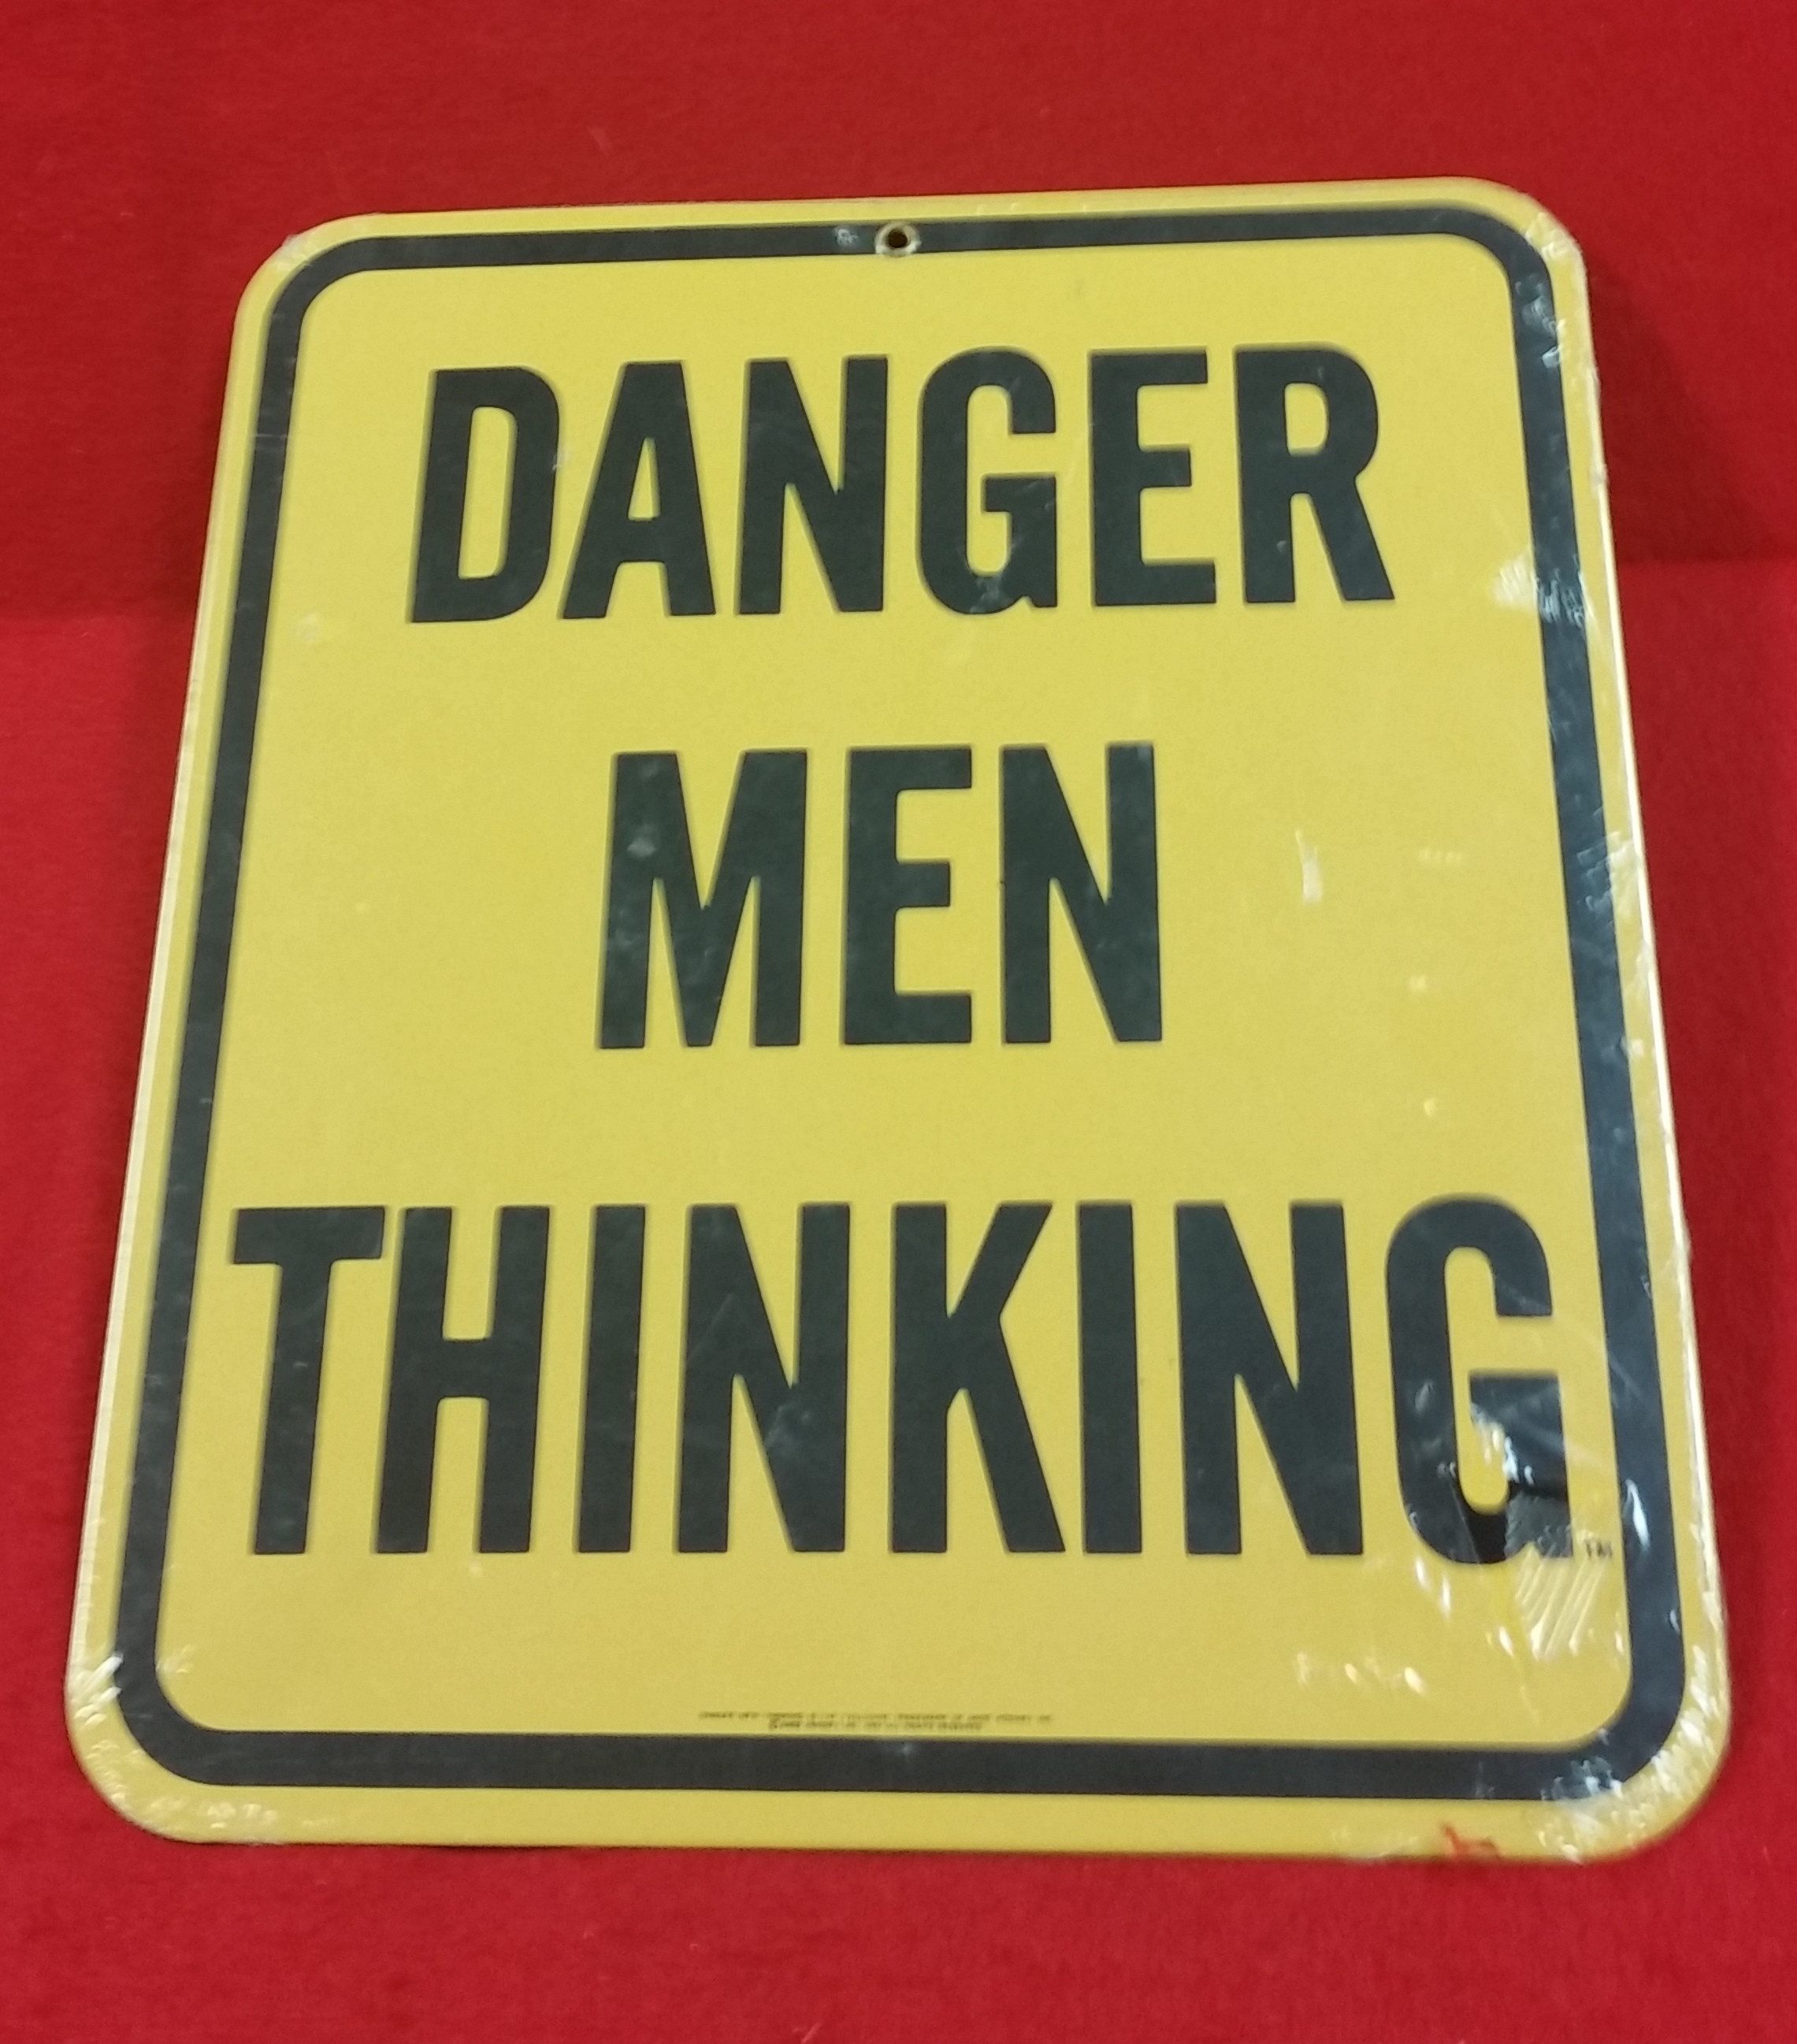 VINTAGE STYLE TIN SIGN - DANGER MEN THINKING - SIGN COLLECTIBLES